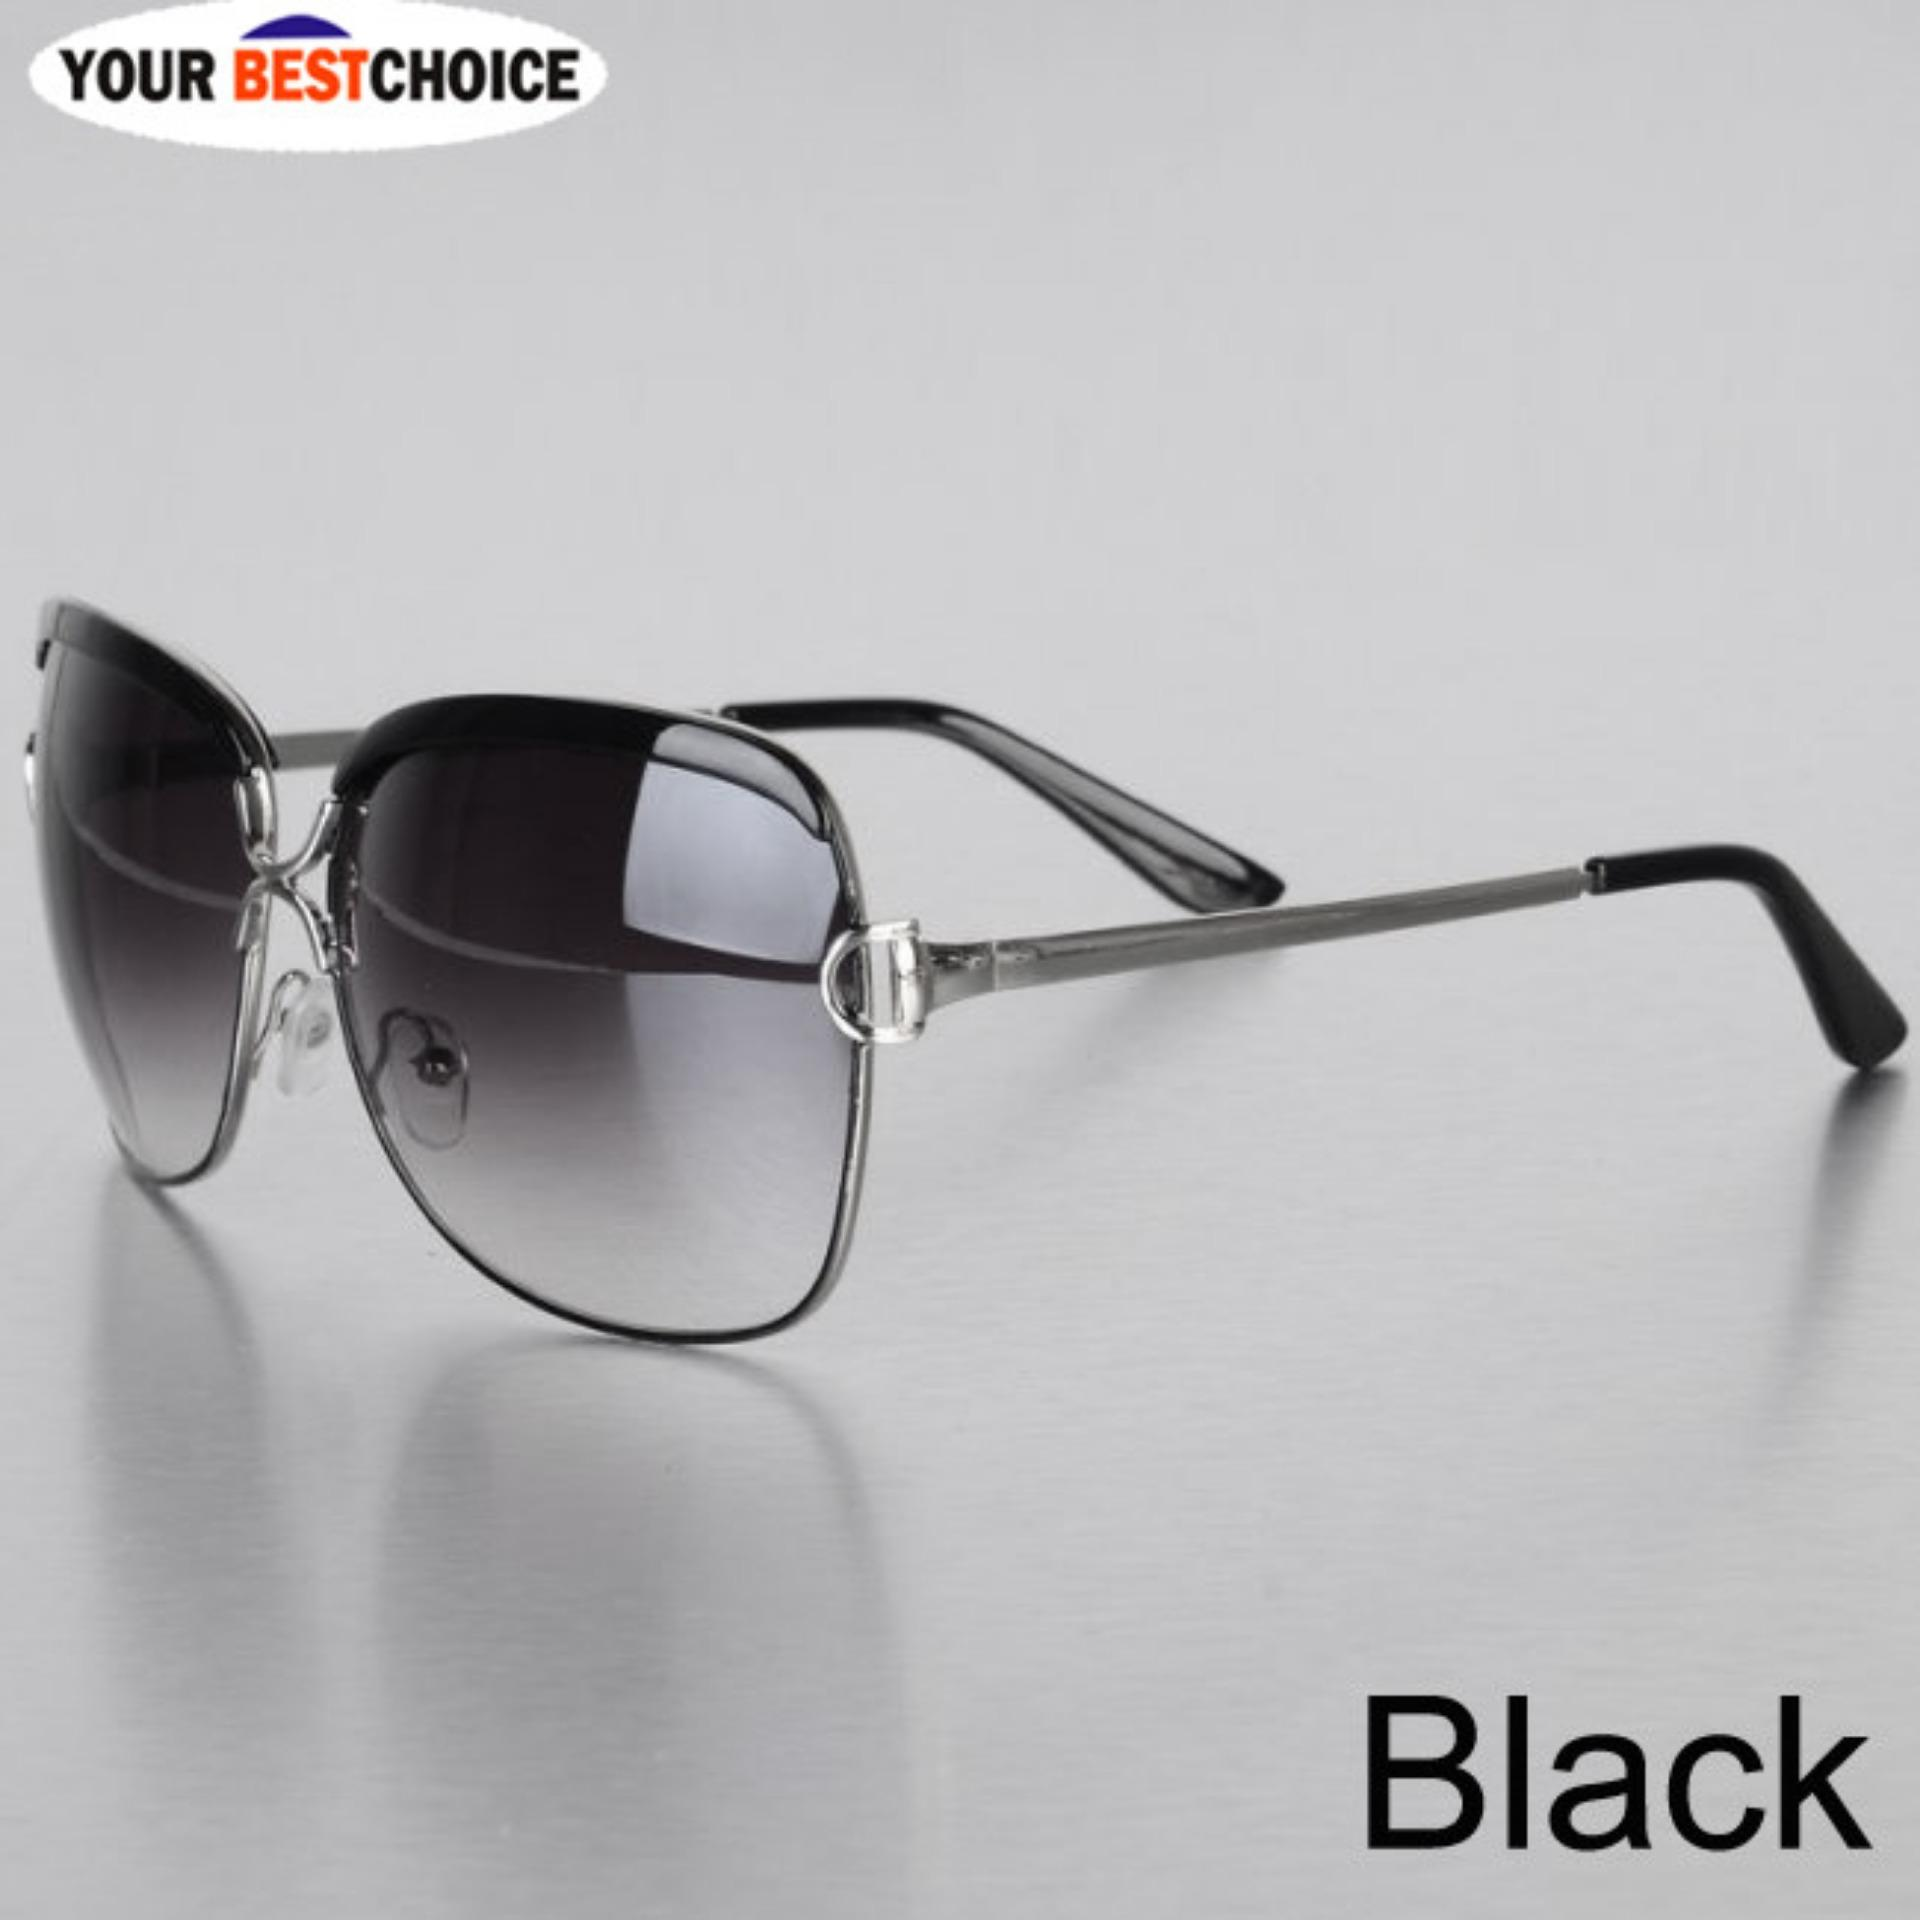 Kacamata Wanita Ybc Women Bingkai Logam Sunglasses Alloy Kaki Kacamata By Your Bestchoice.